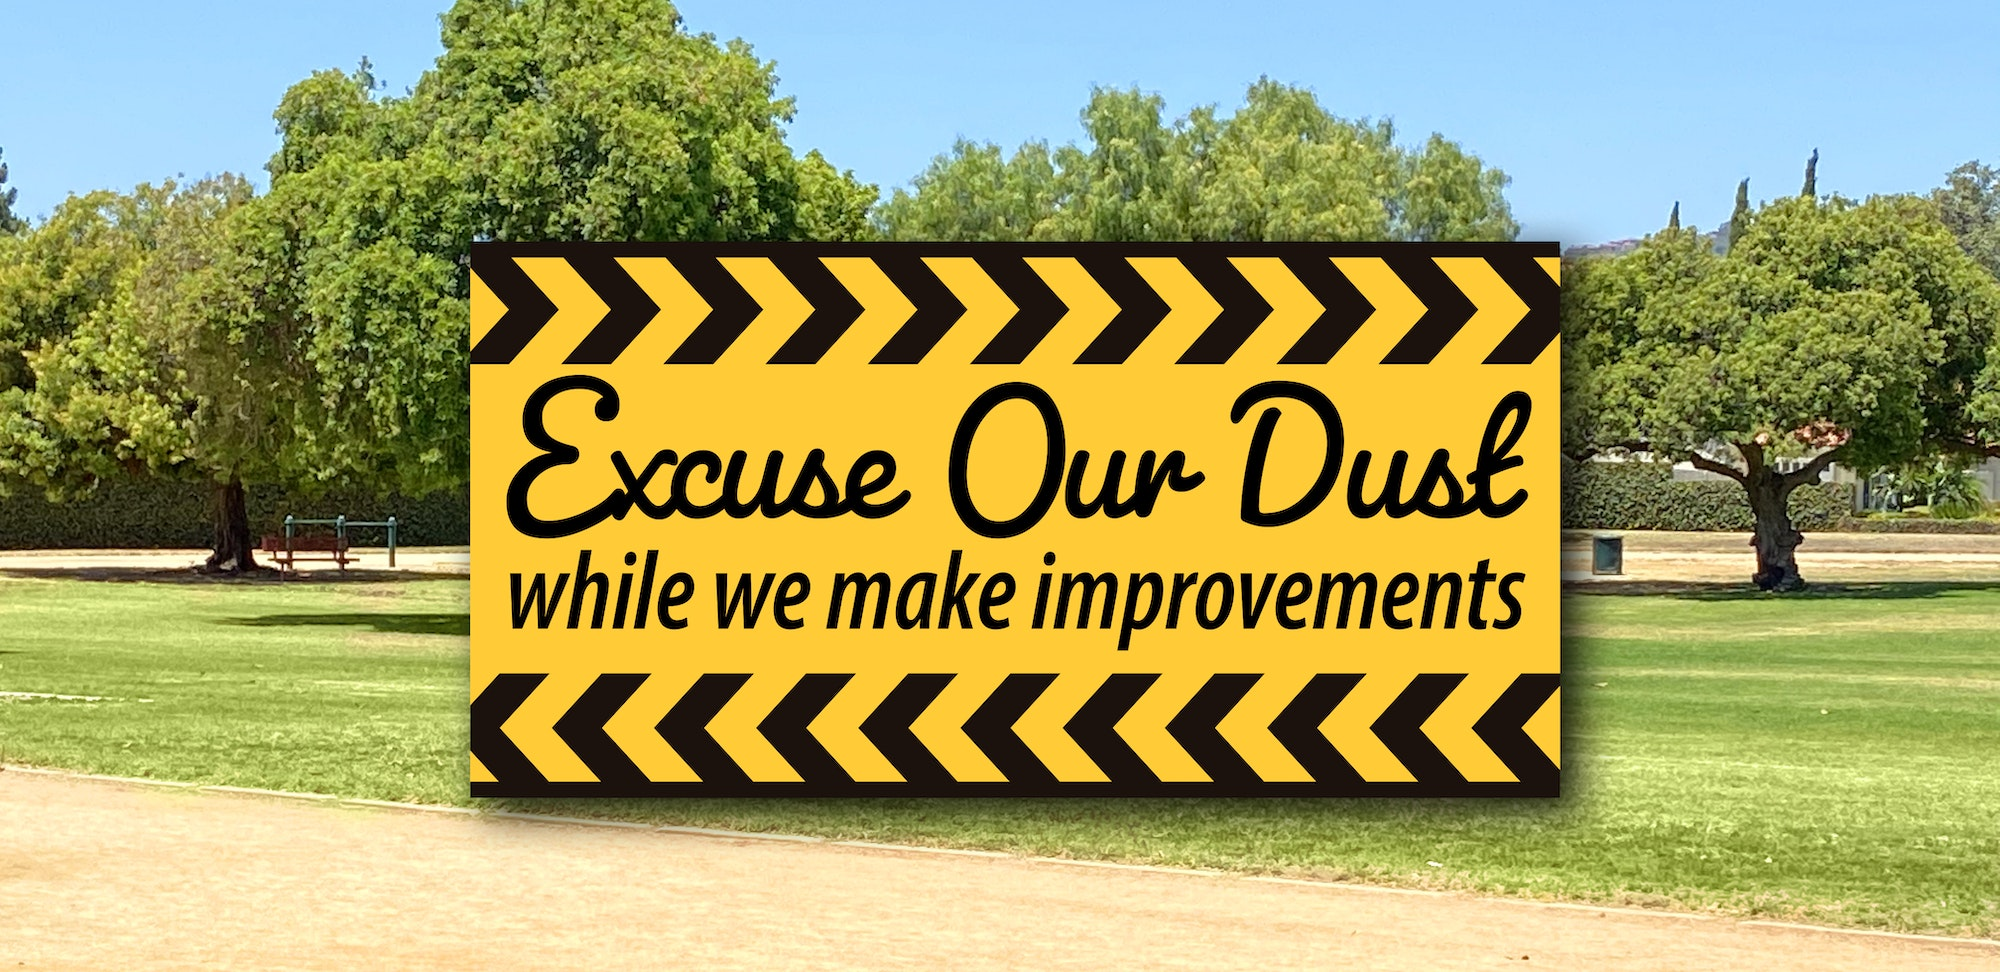 excuse Our Dust